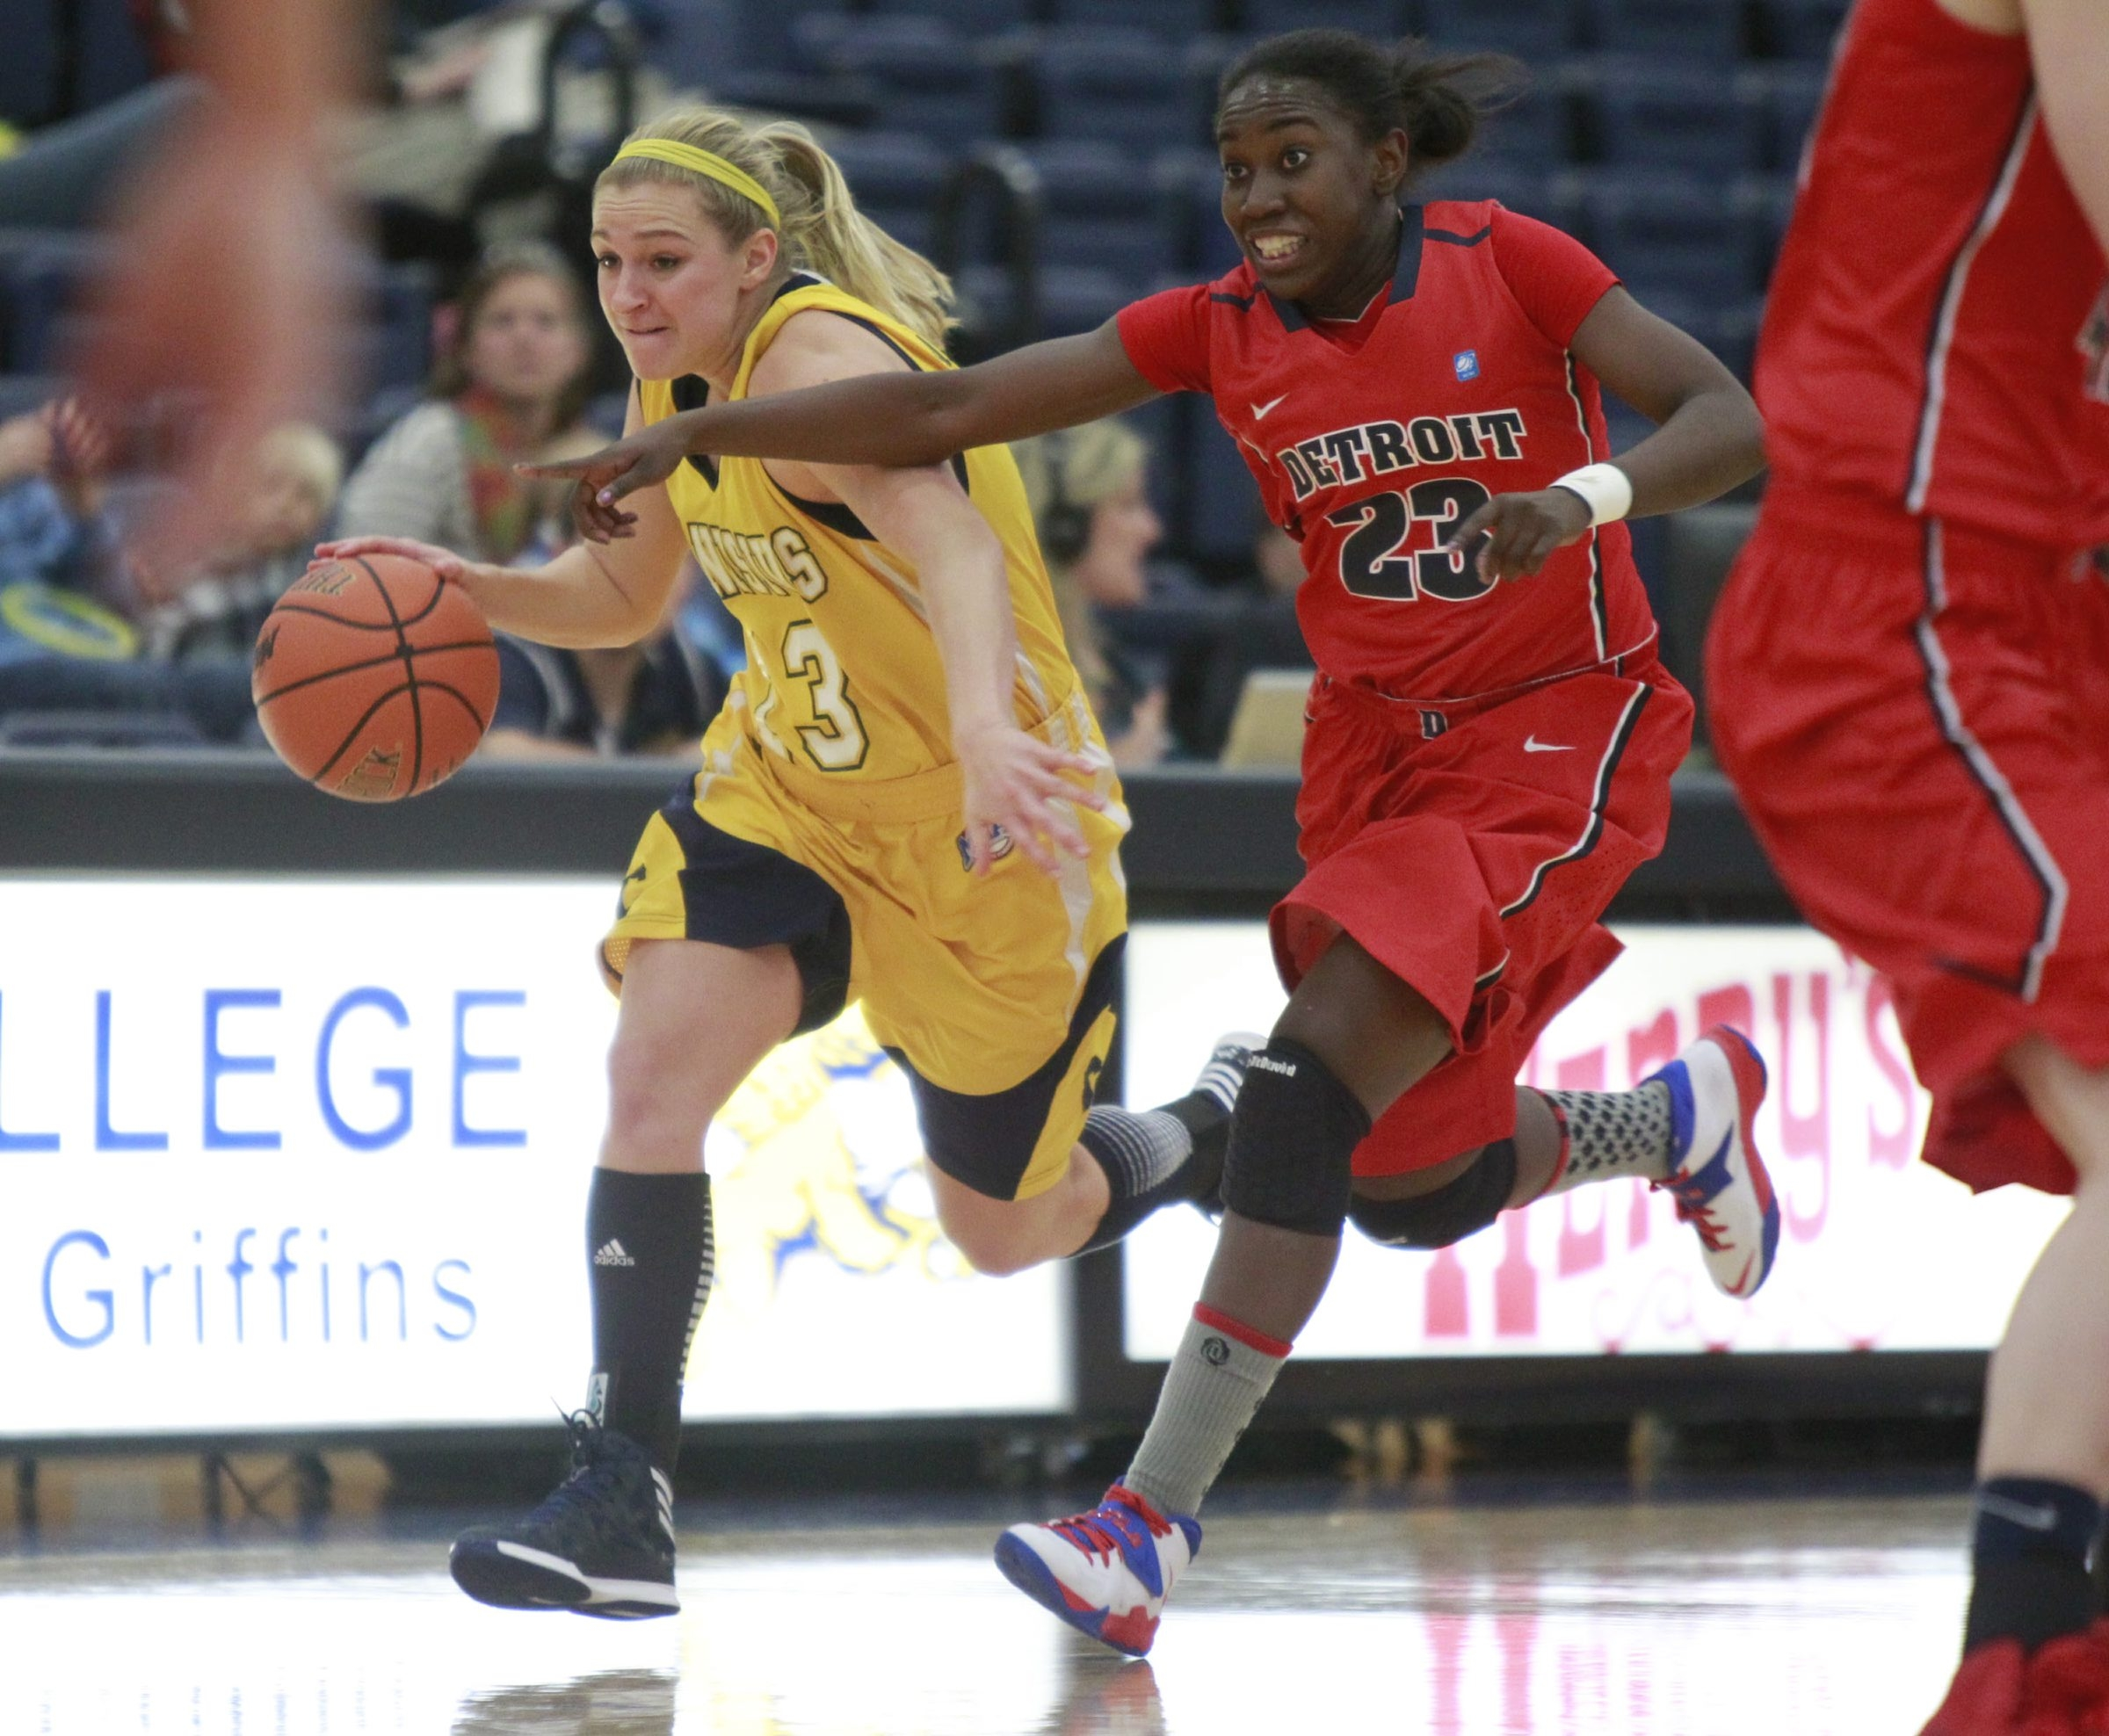 Canisius' Brooke Angelos heads up court against Detroit's Senee Shearer at the Koessler Athletic Center on Friday.